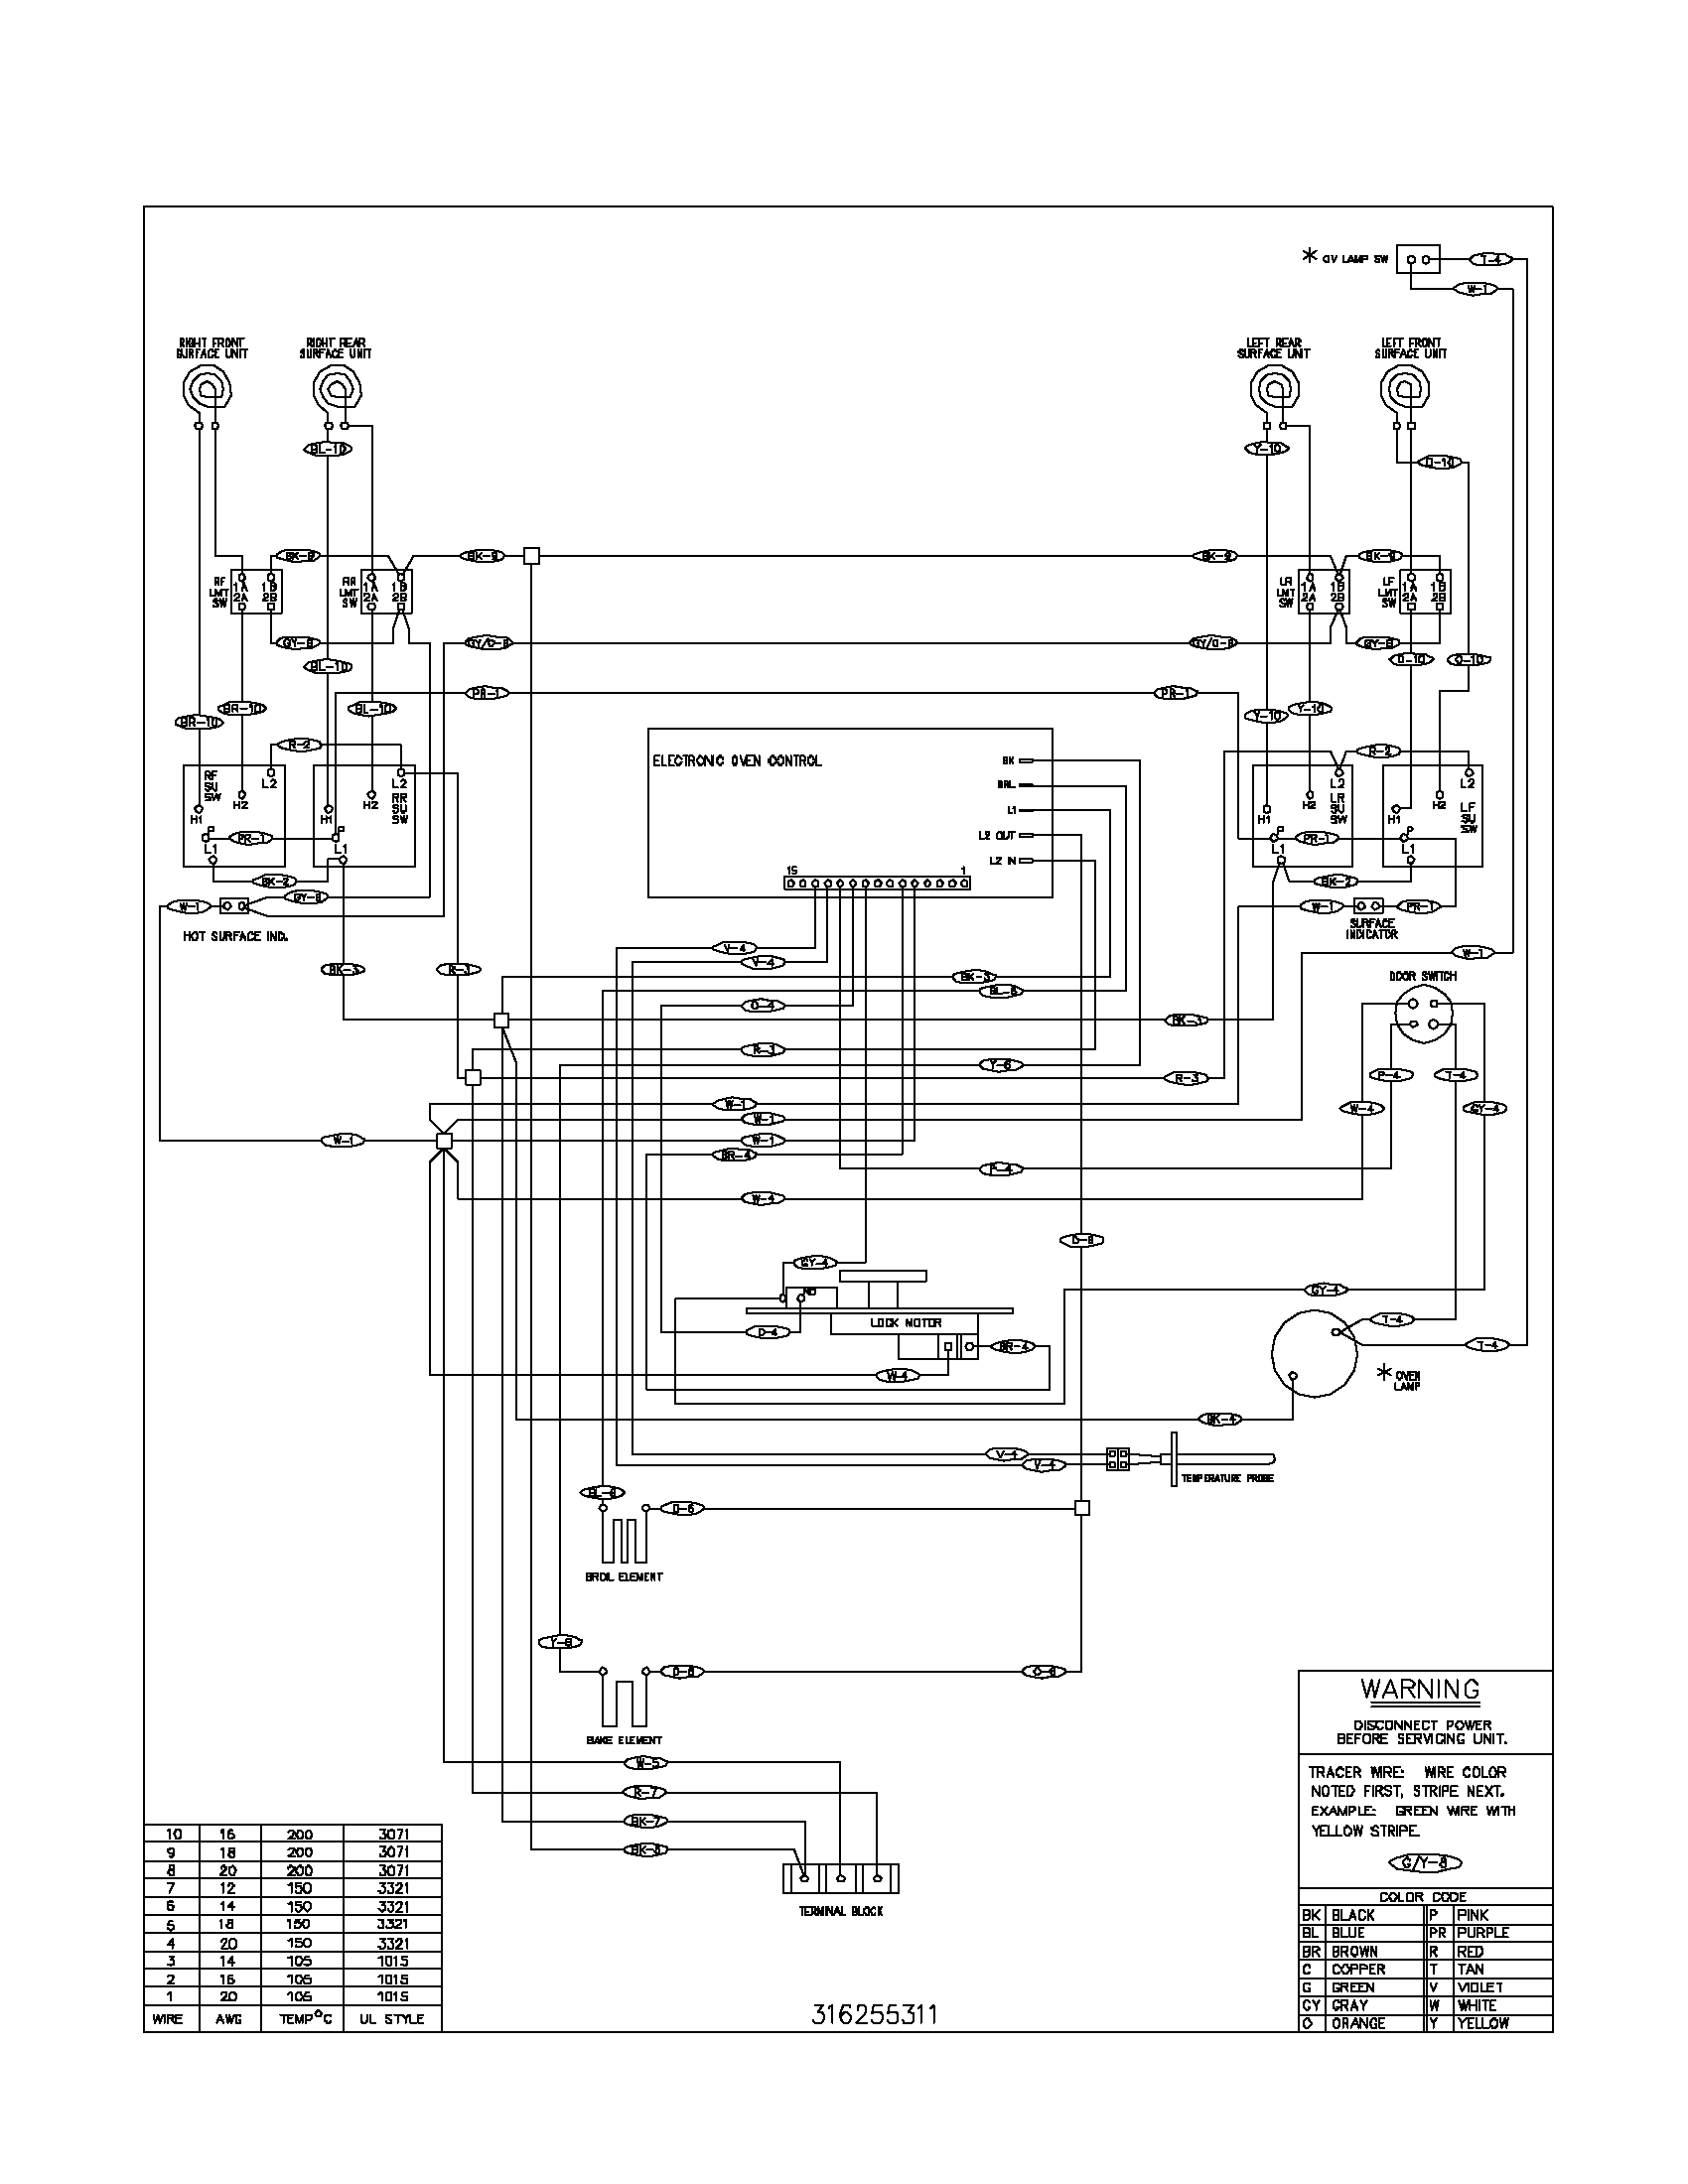 wiring diagram parts?resize\\\\\\\\\\\\\\\\\\\\\\\\\\\\\\\\\\\\\\\\\\\\\\\=665%2C861\\\\\\\\\\\\\\\\\\\\\\\\\\\\\\\\\\\\\\\\\\\\\\\&ssl\\\\\\\\\\\\\\\\\\\\\\\\\\\\\\\\\\\\\\\\\\\\\\\=1 rdx 755dz wiring diagram,dz \u2022 edmiracle co  at mifinder.co